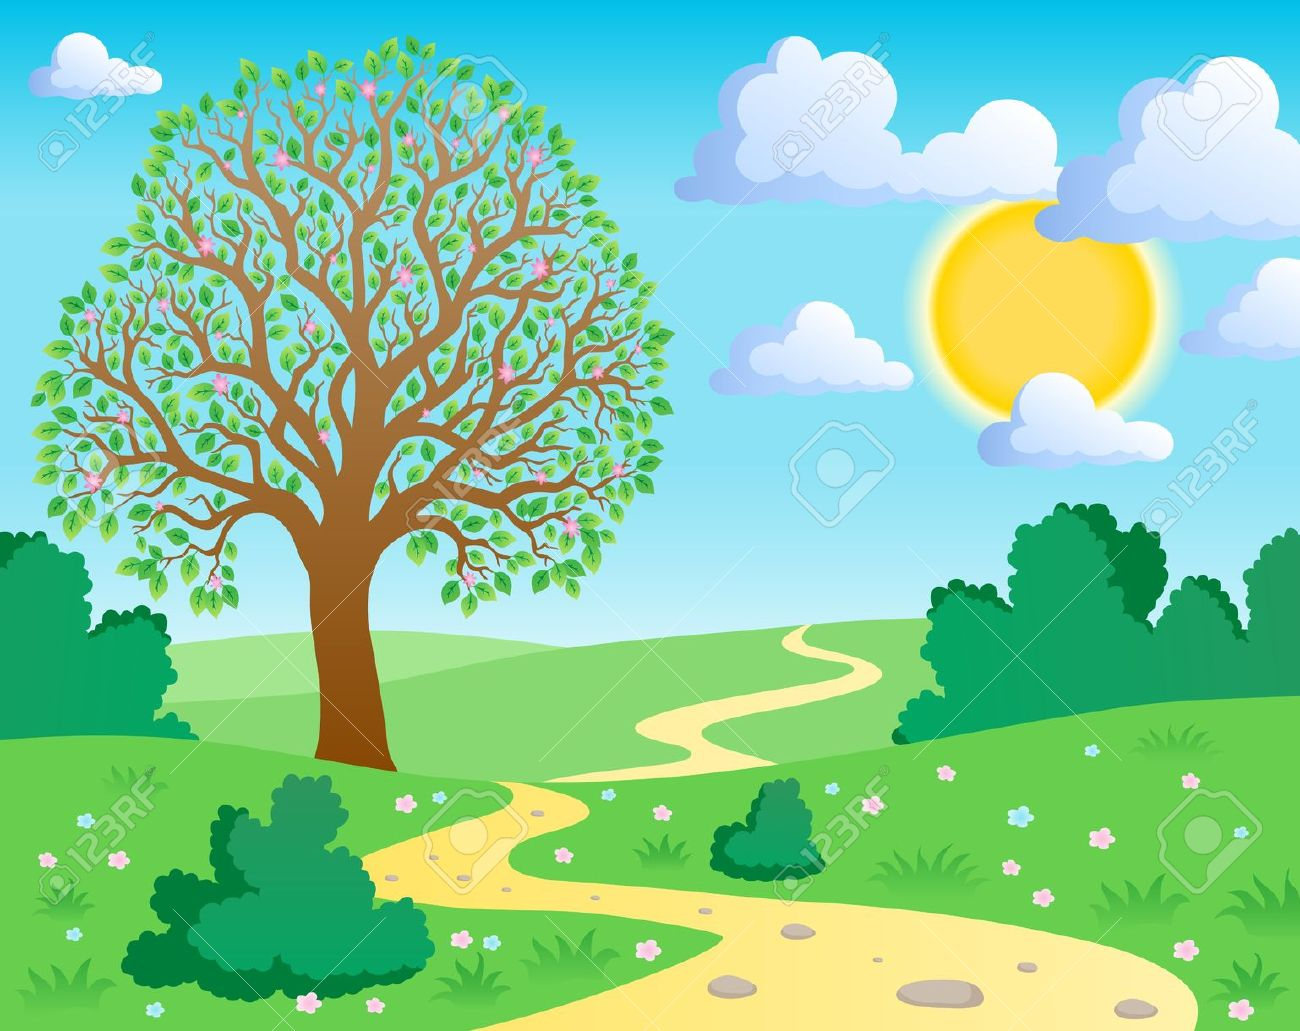 Road scene clipart jpg transparent download Road clipart nature scene for free download and use images ... jpg transparent download